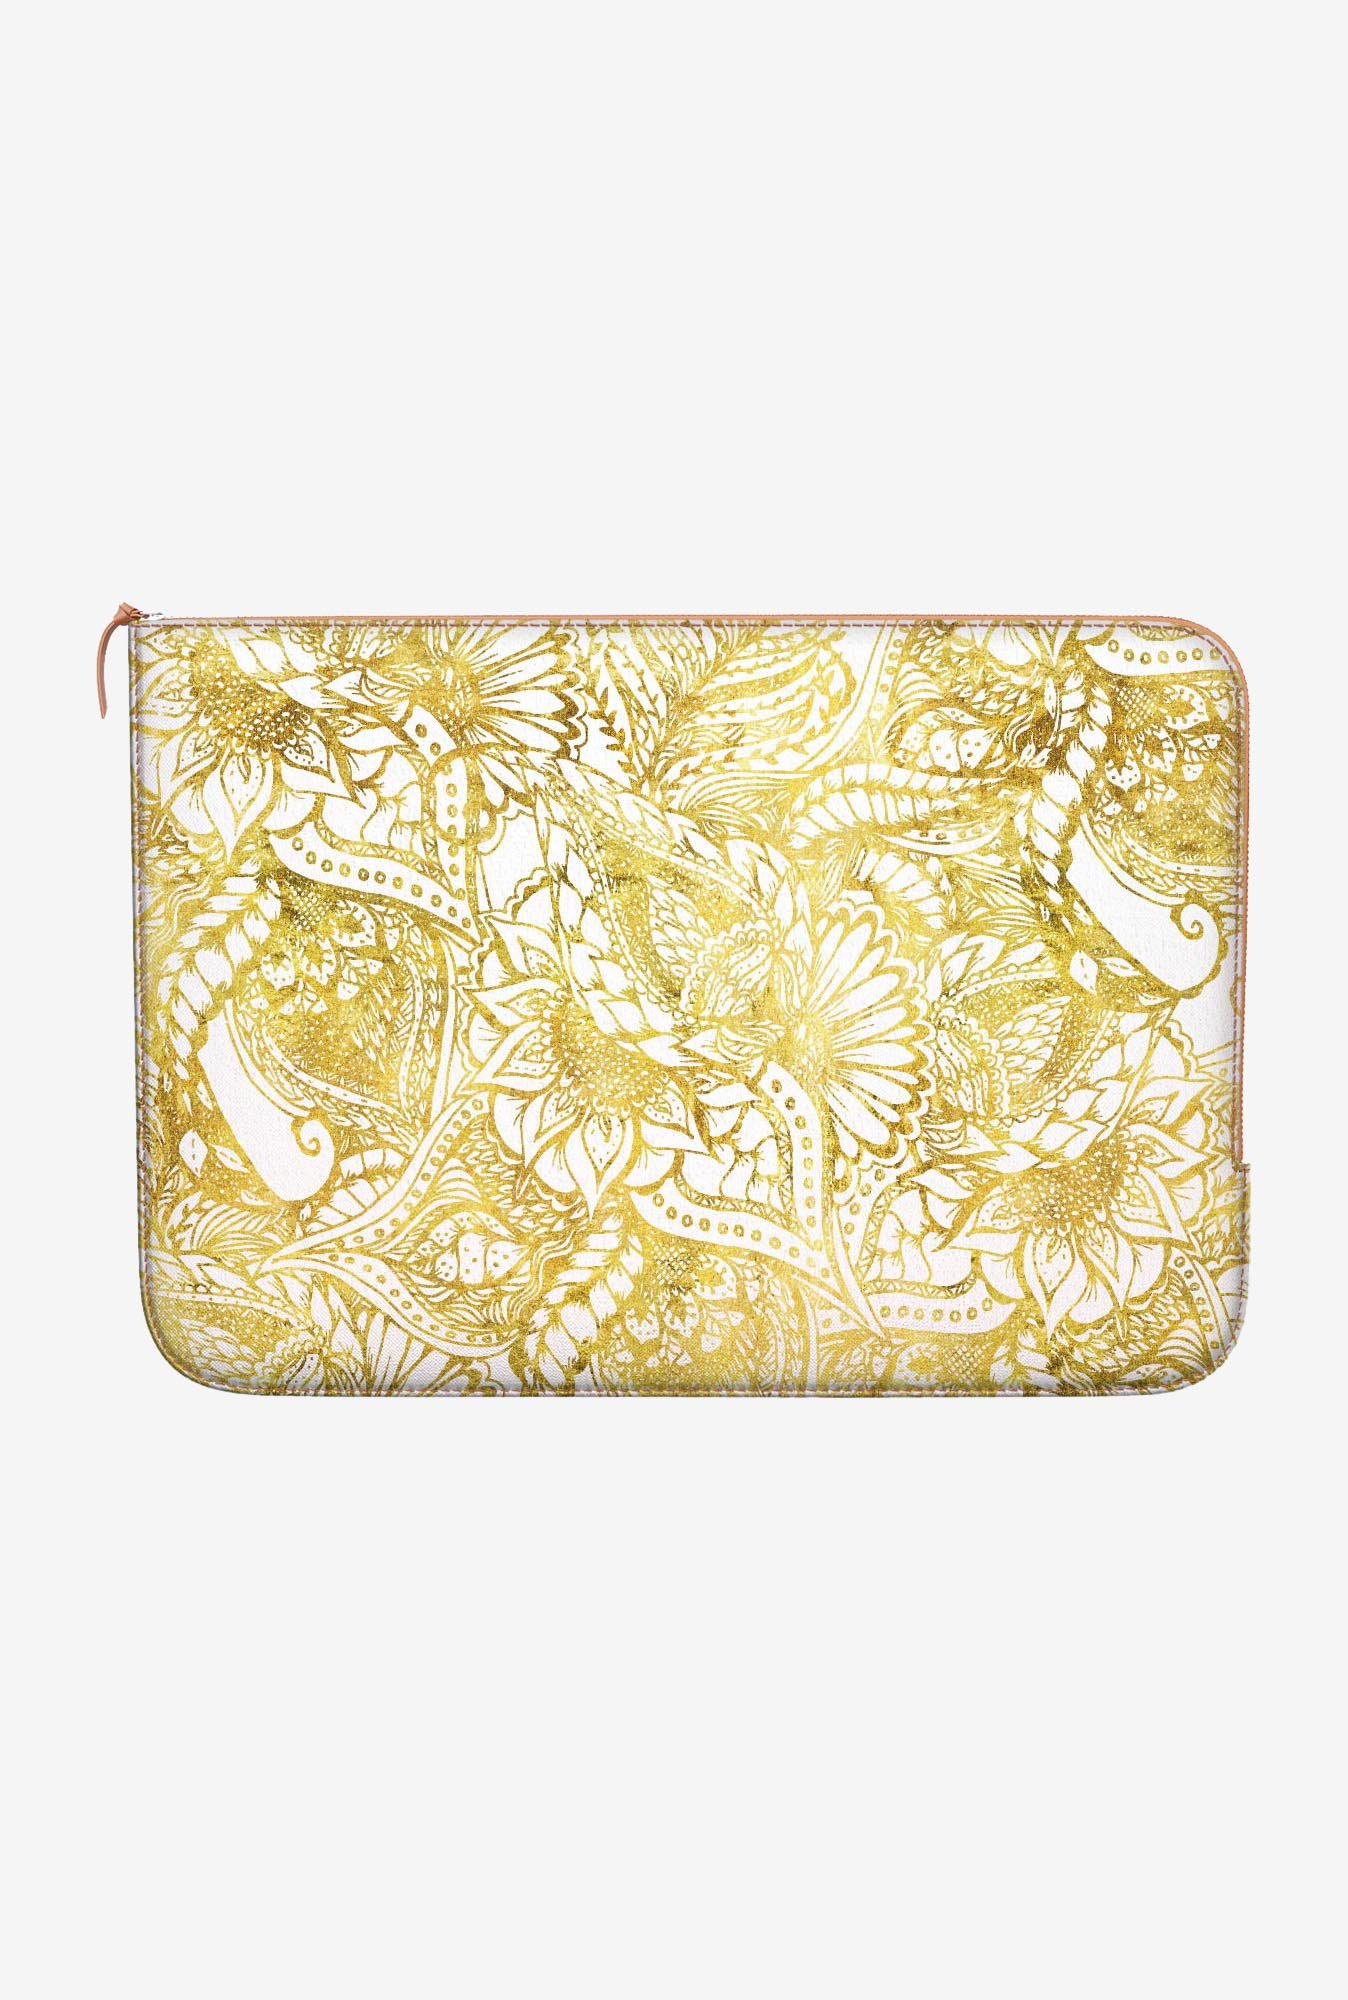 DailyObjects Gold Floral MacBook Air 13 Zippered Sleeve